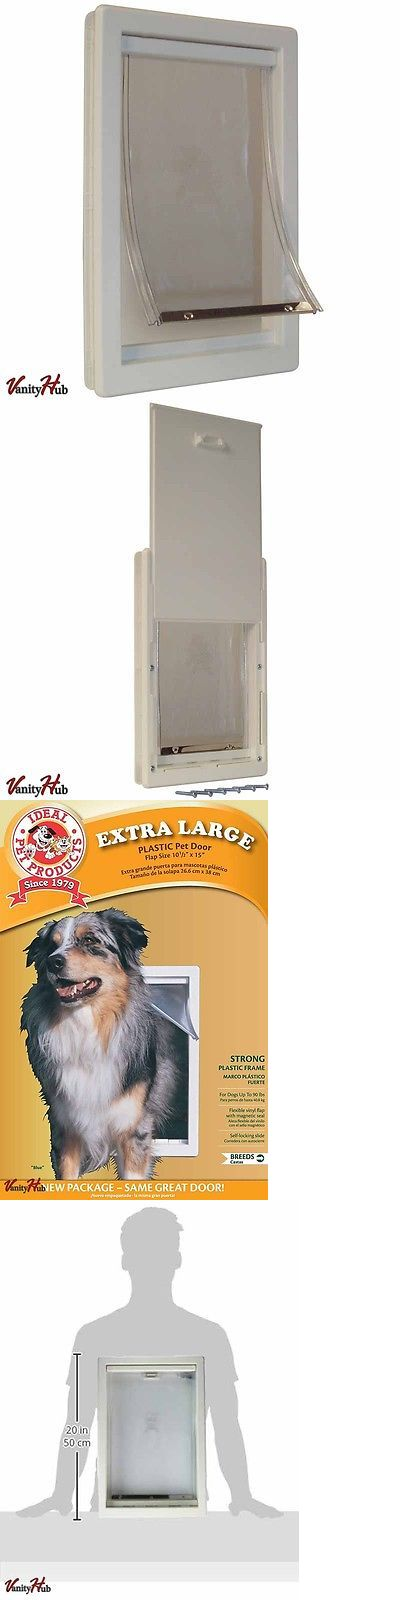 Doors and flaps 116379 ideal pet super large ruff weather dog door doors and flaps 116379 ideal pet super large ruff weather dog door plastic frame dual flap xl doggy new buy it now only 17776 pinterest dogs eventshaper